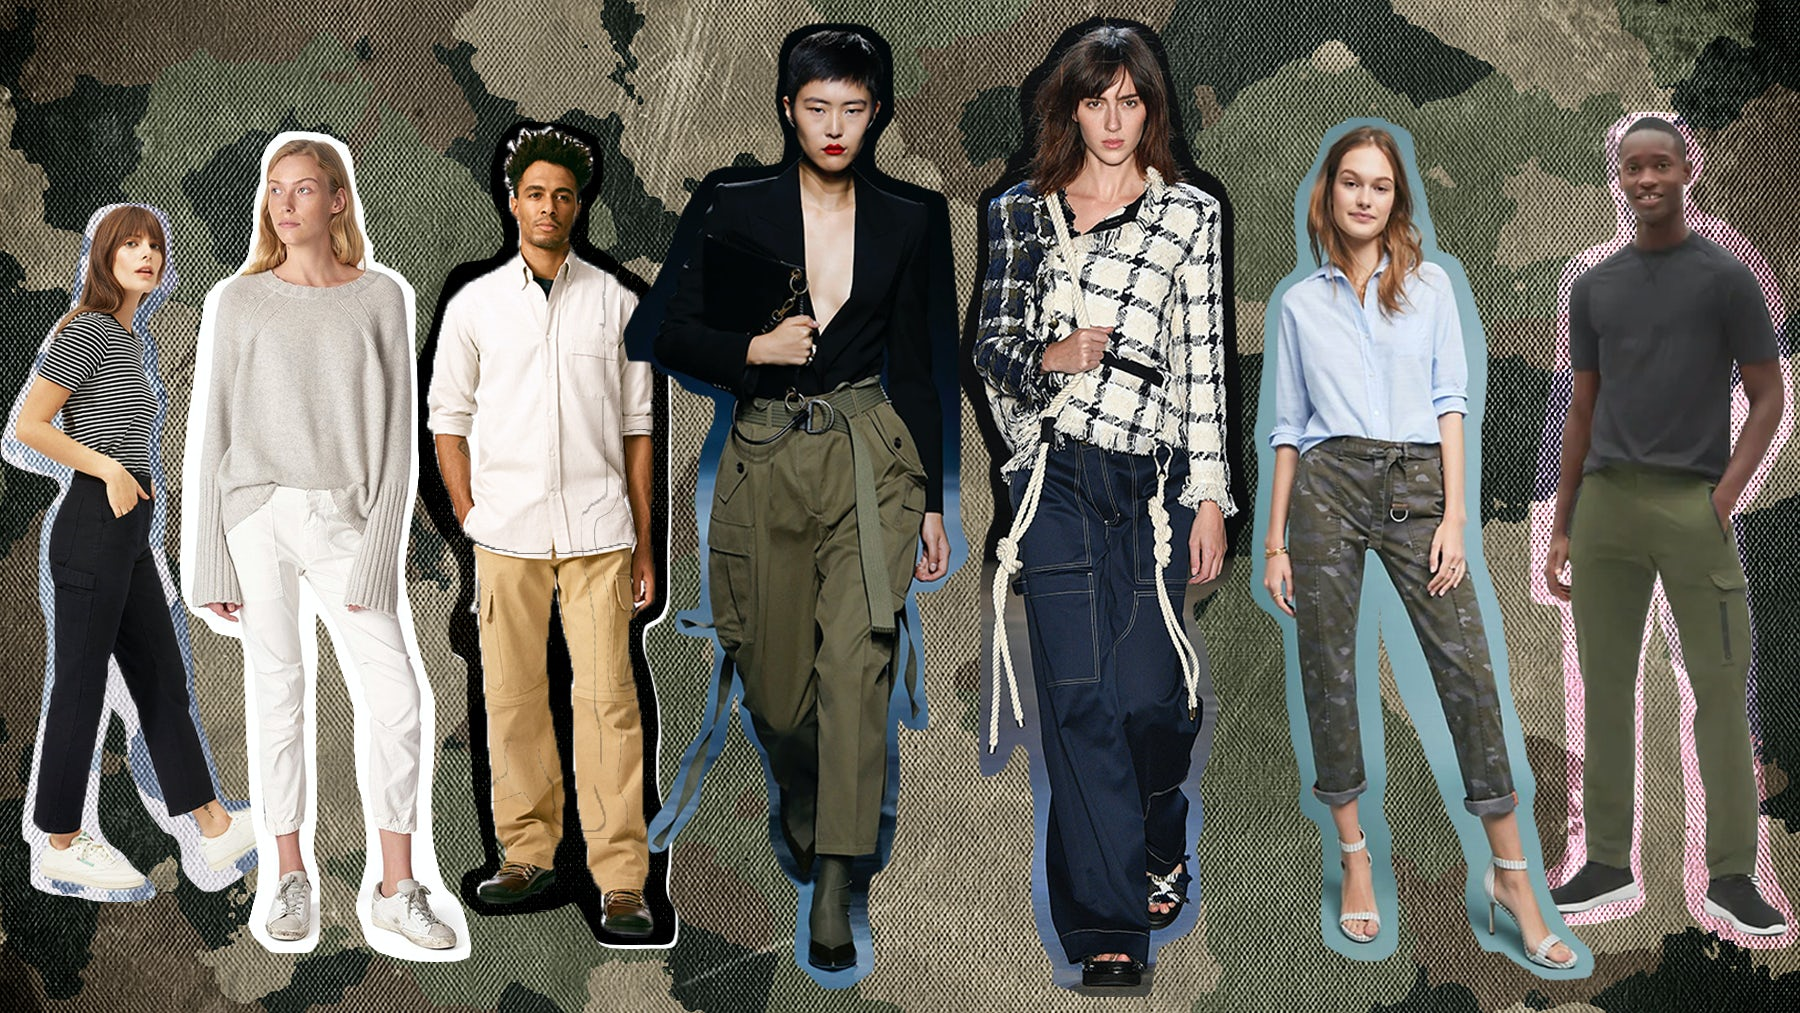 (Left to Right) Cargo pant designs from: Everlane, Nili Lotan, Loewe, Givenchy, Monse, Anthropologie and Gap | Illustration by BoF